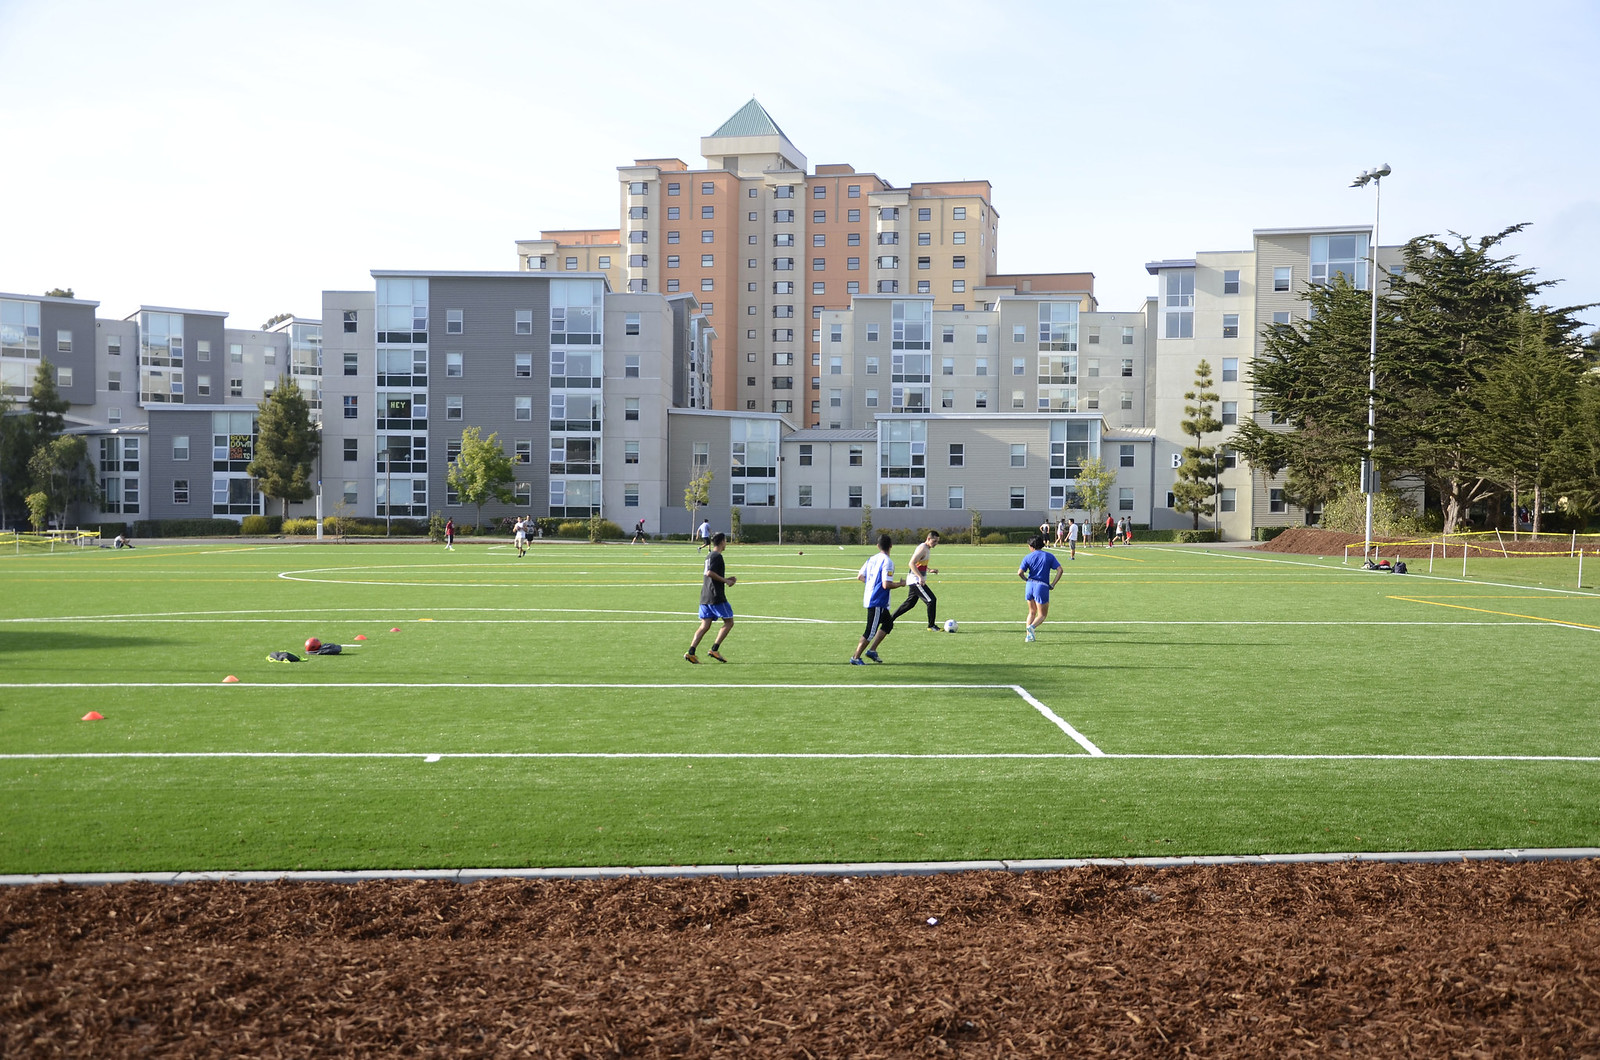 SF State's new recreation area and field is done being constructed and is now ready to be enjoyed by SF State students and visitors. Photo by Virginia Tieman / Xpress